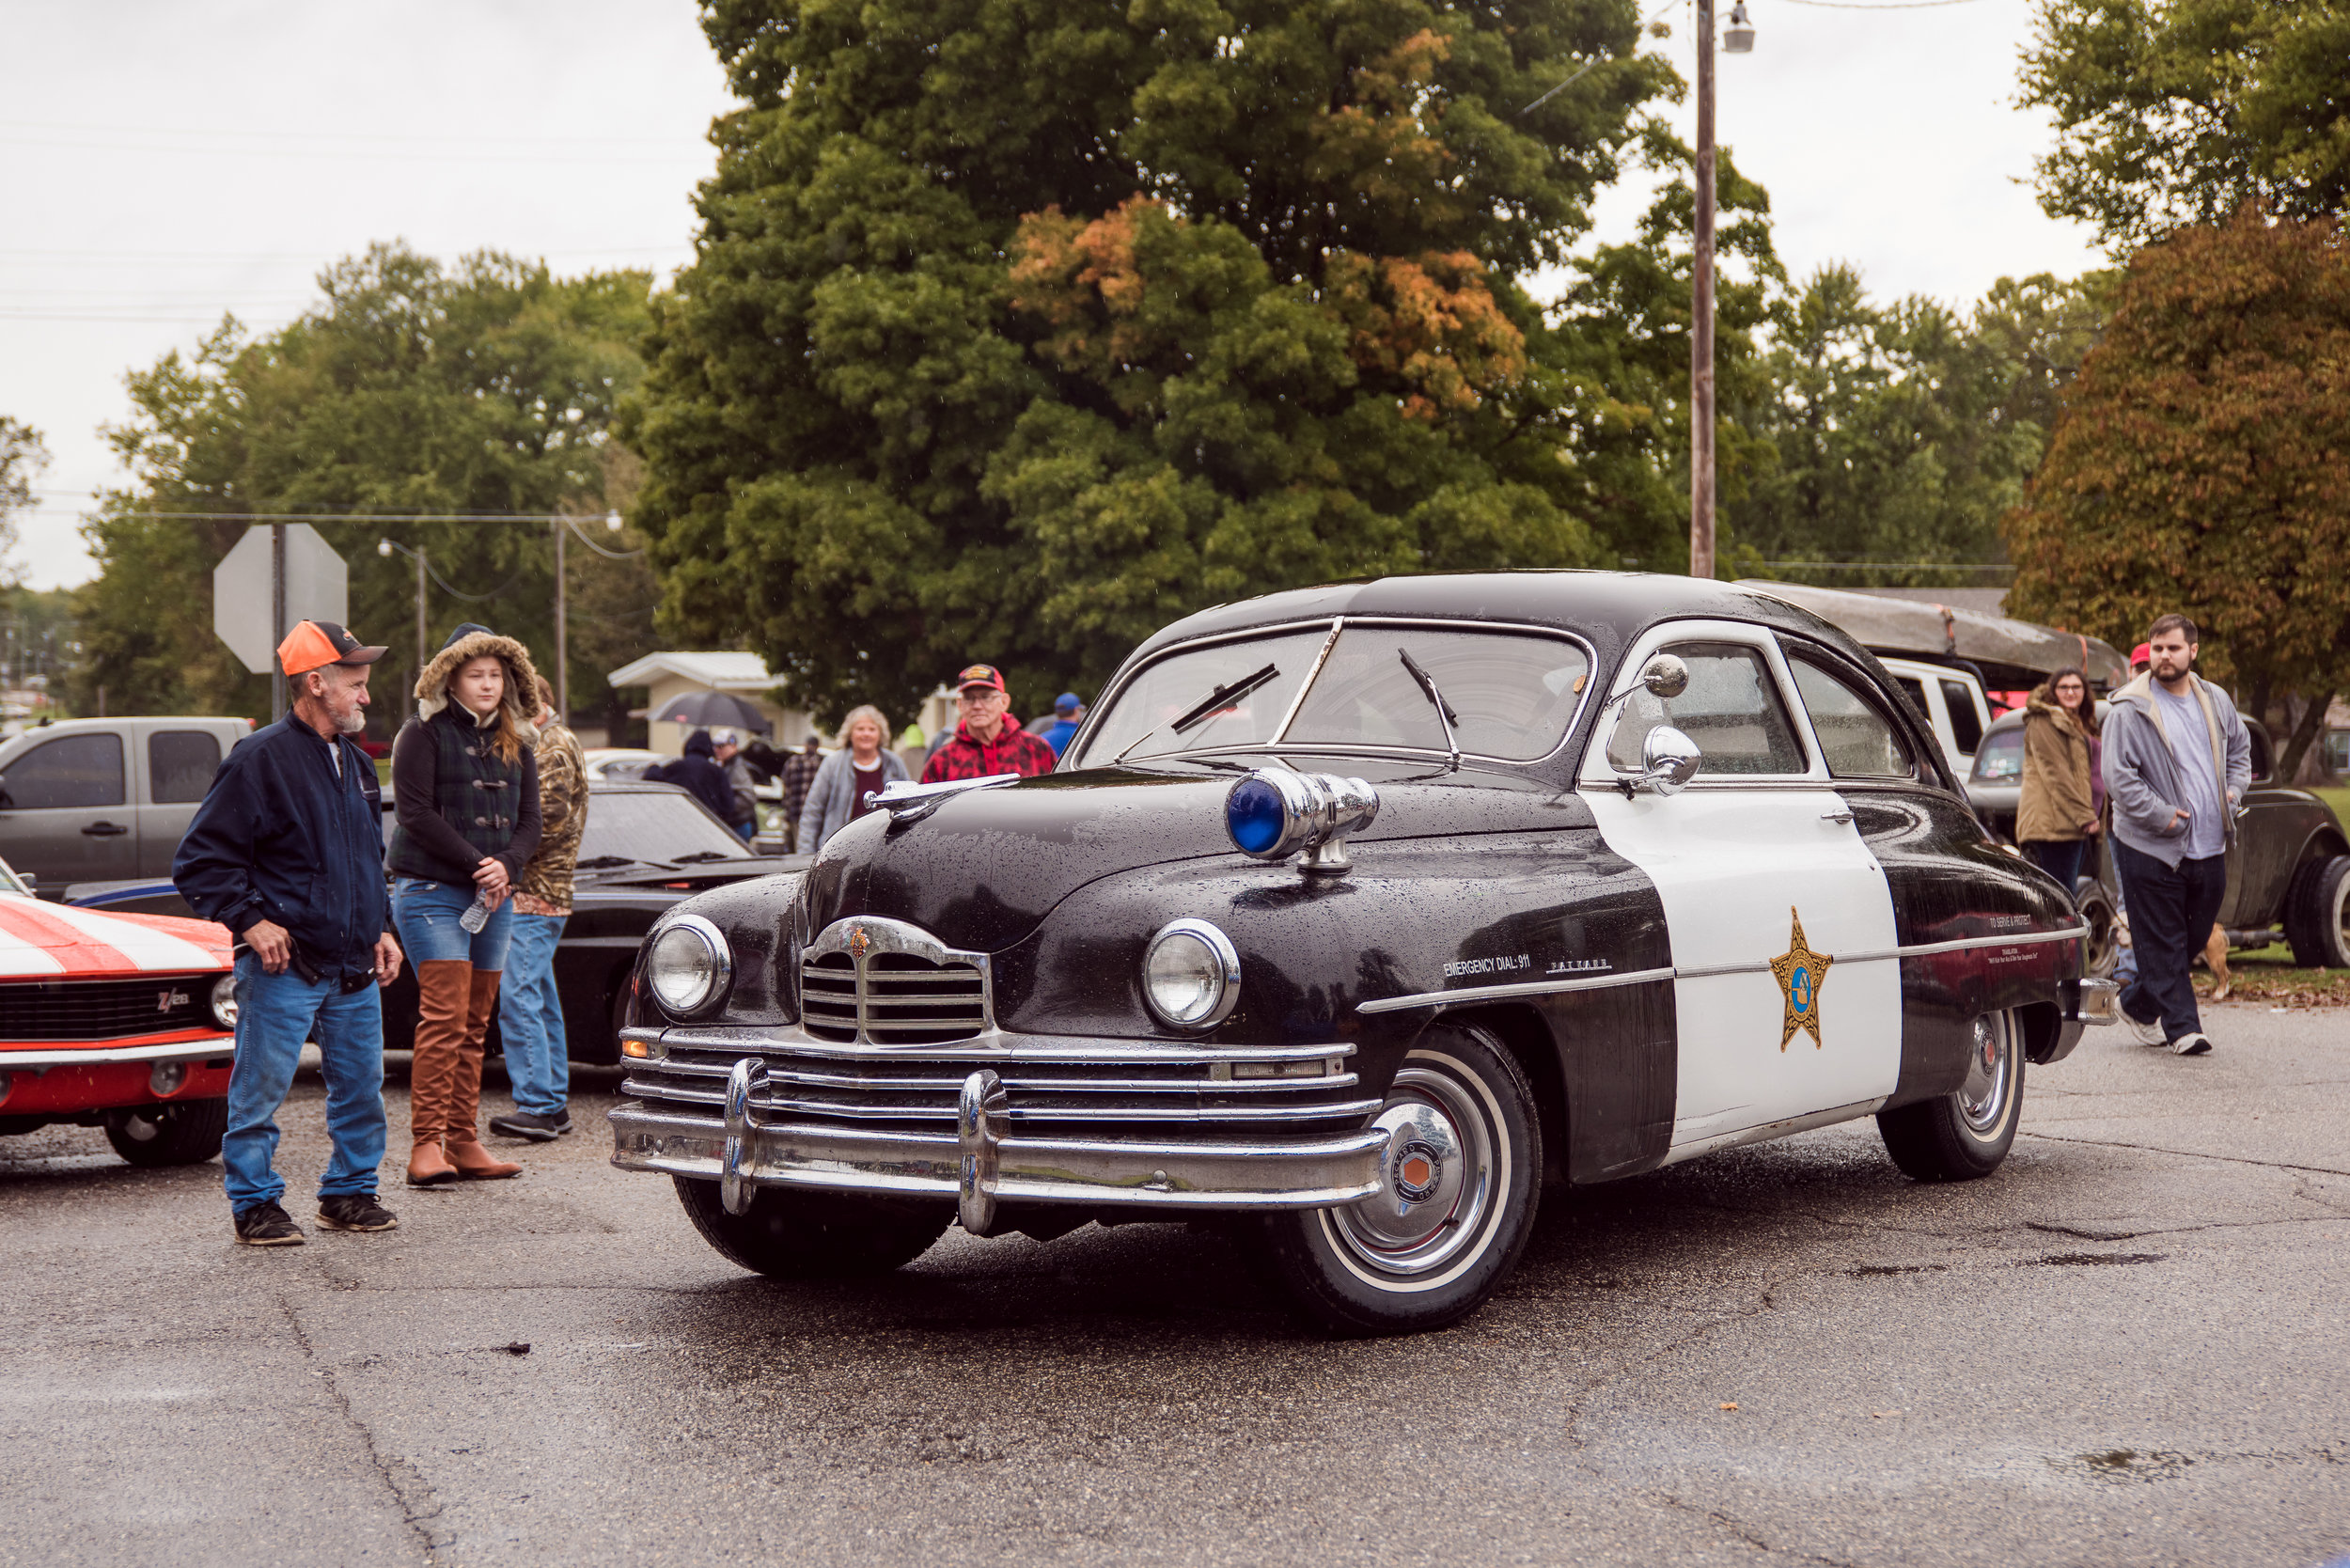 historic vehicle sheriff's car at baxter springs car show.jpg